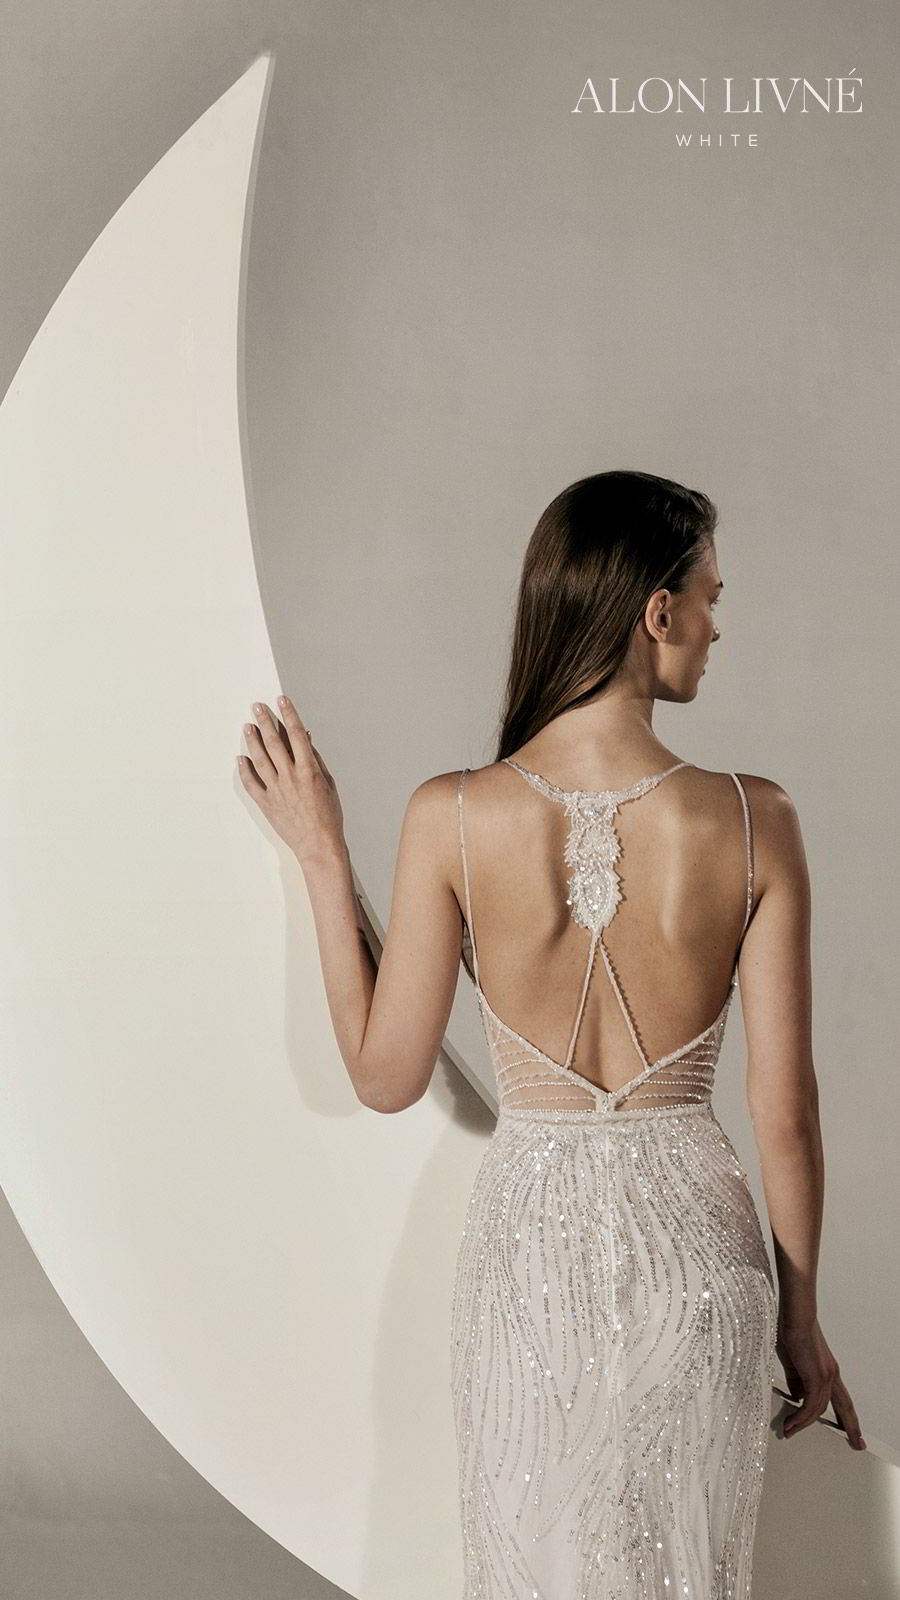 alon livne white spring 2020 bridal sleeveless thin straps fully embellished sheath wedding dress (gia) open back glamorous elegant bv